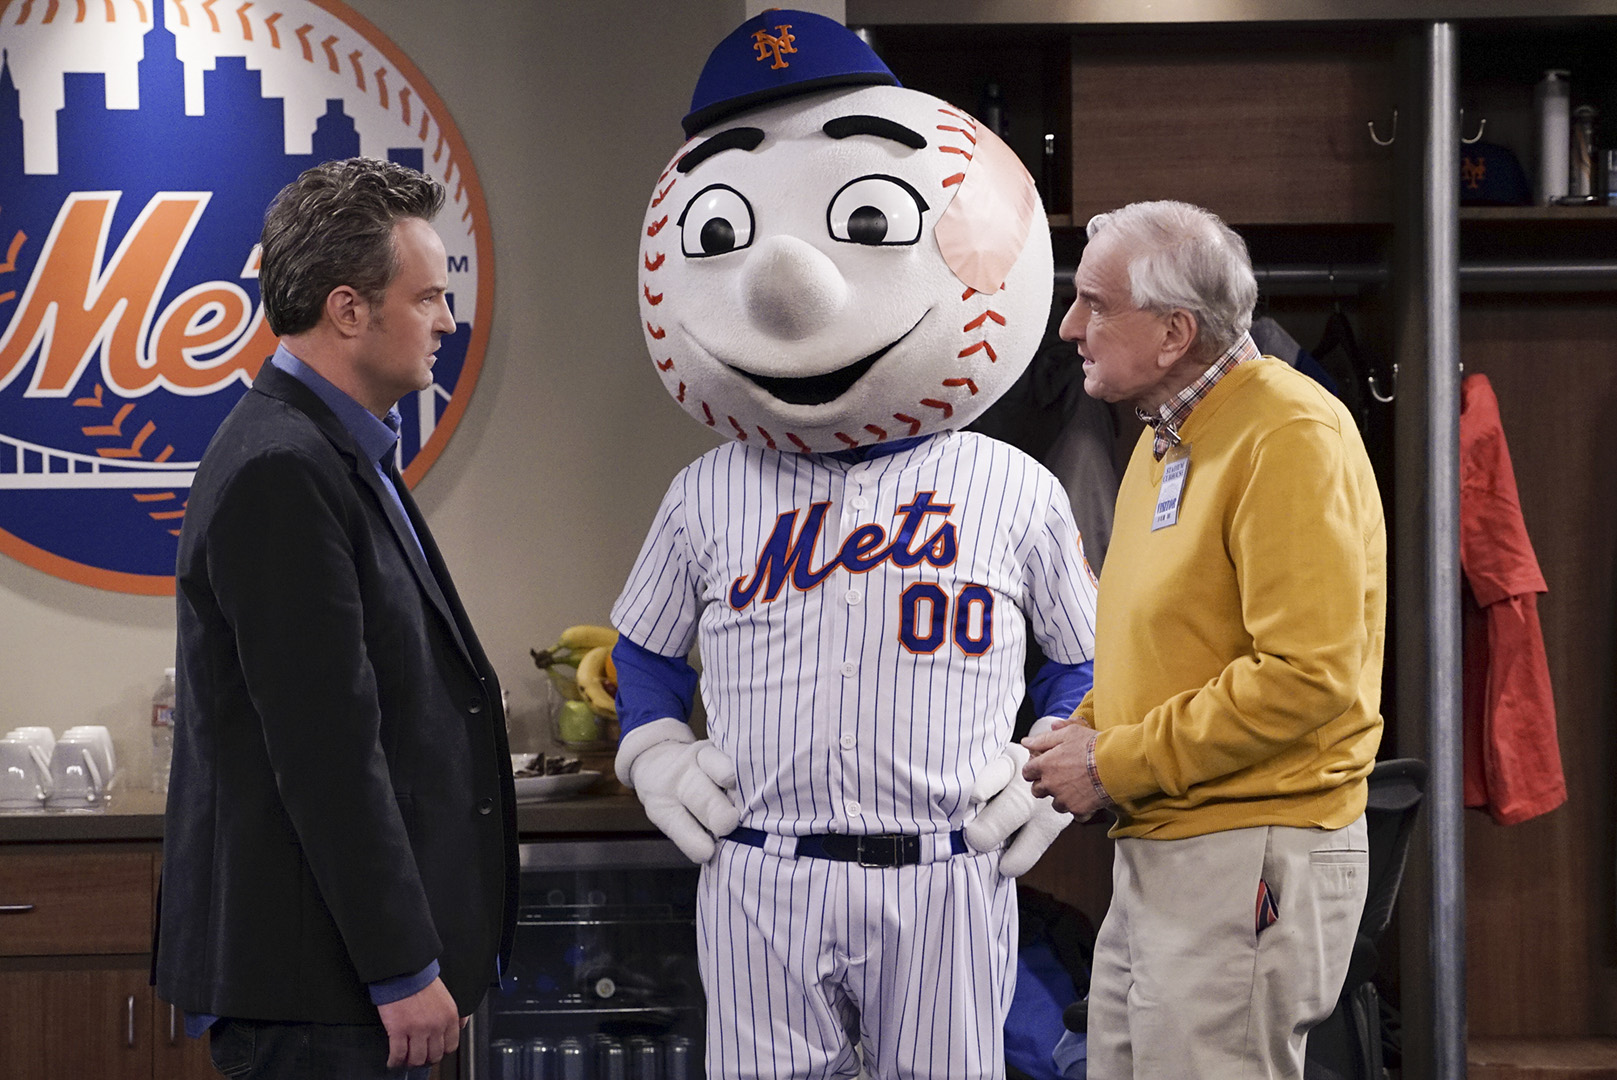 Unfortunately, Oscar takes out his father frustrations on Mr. Met.